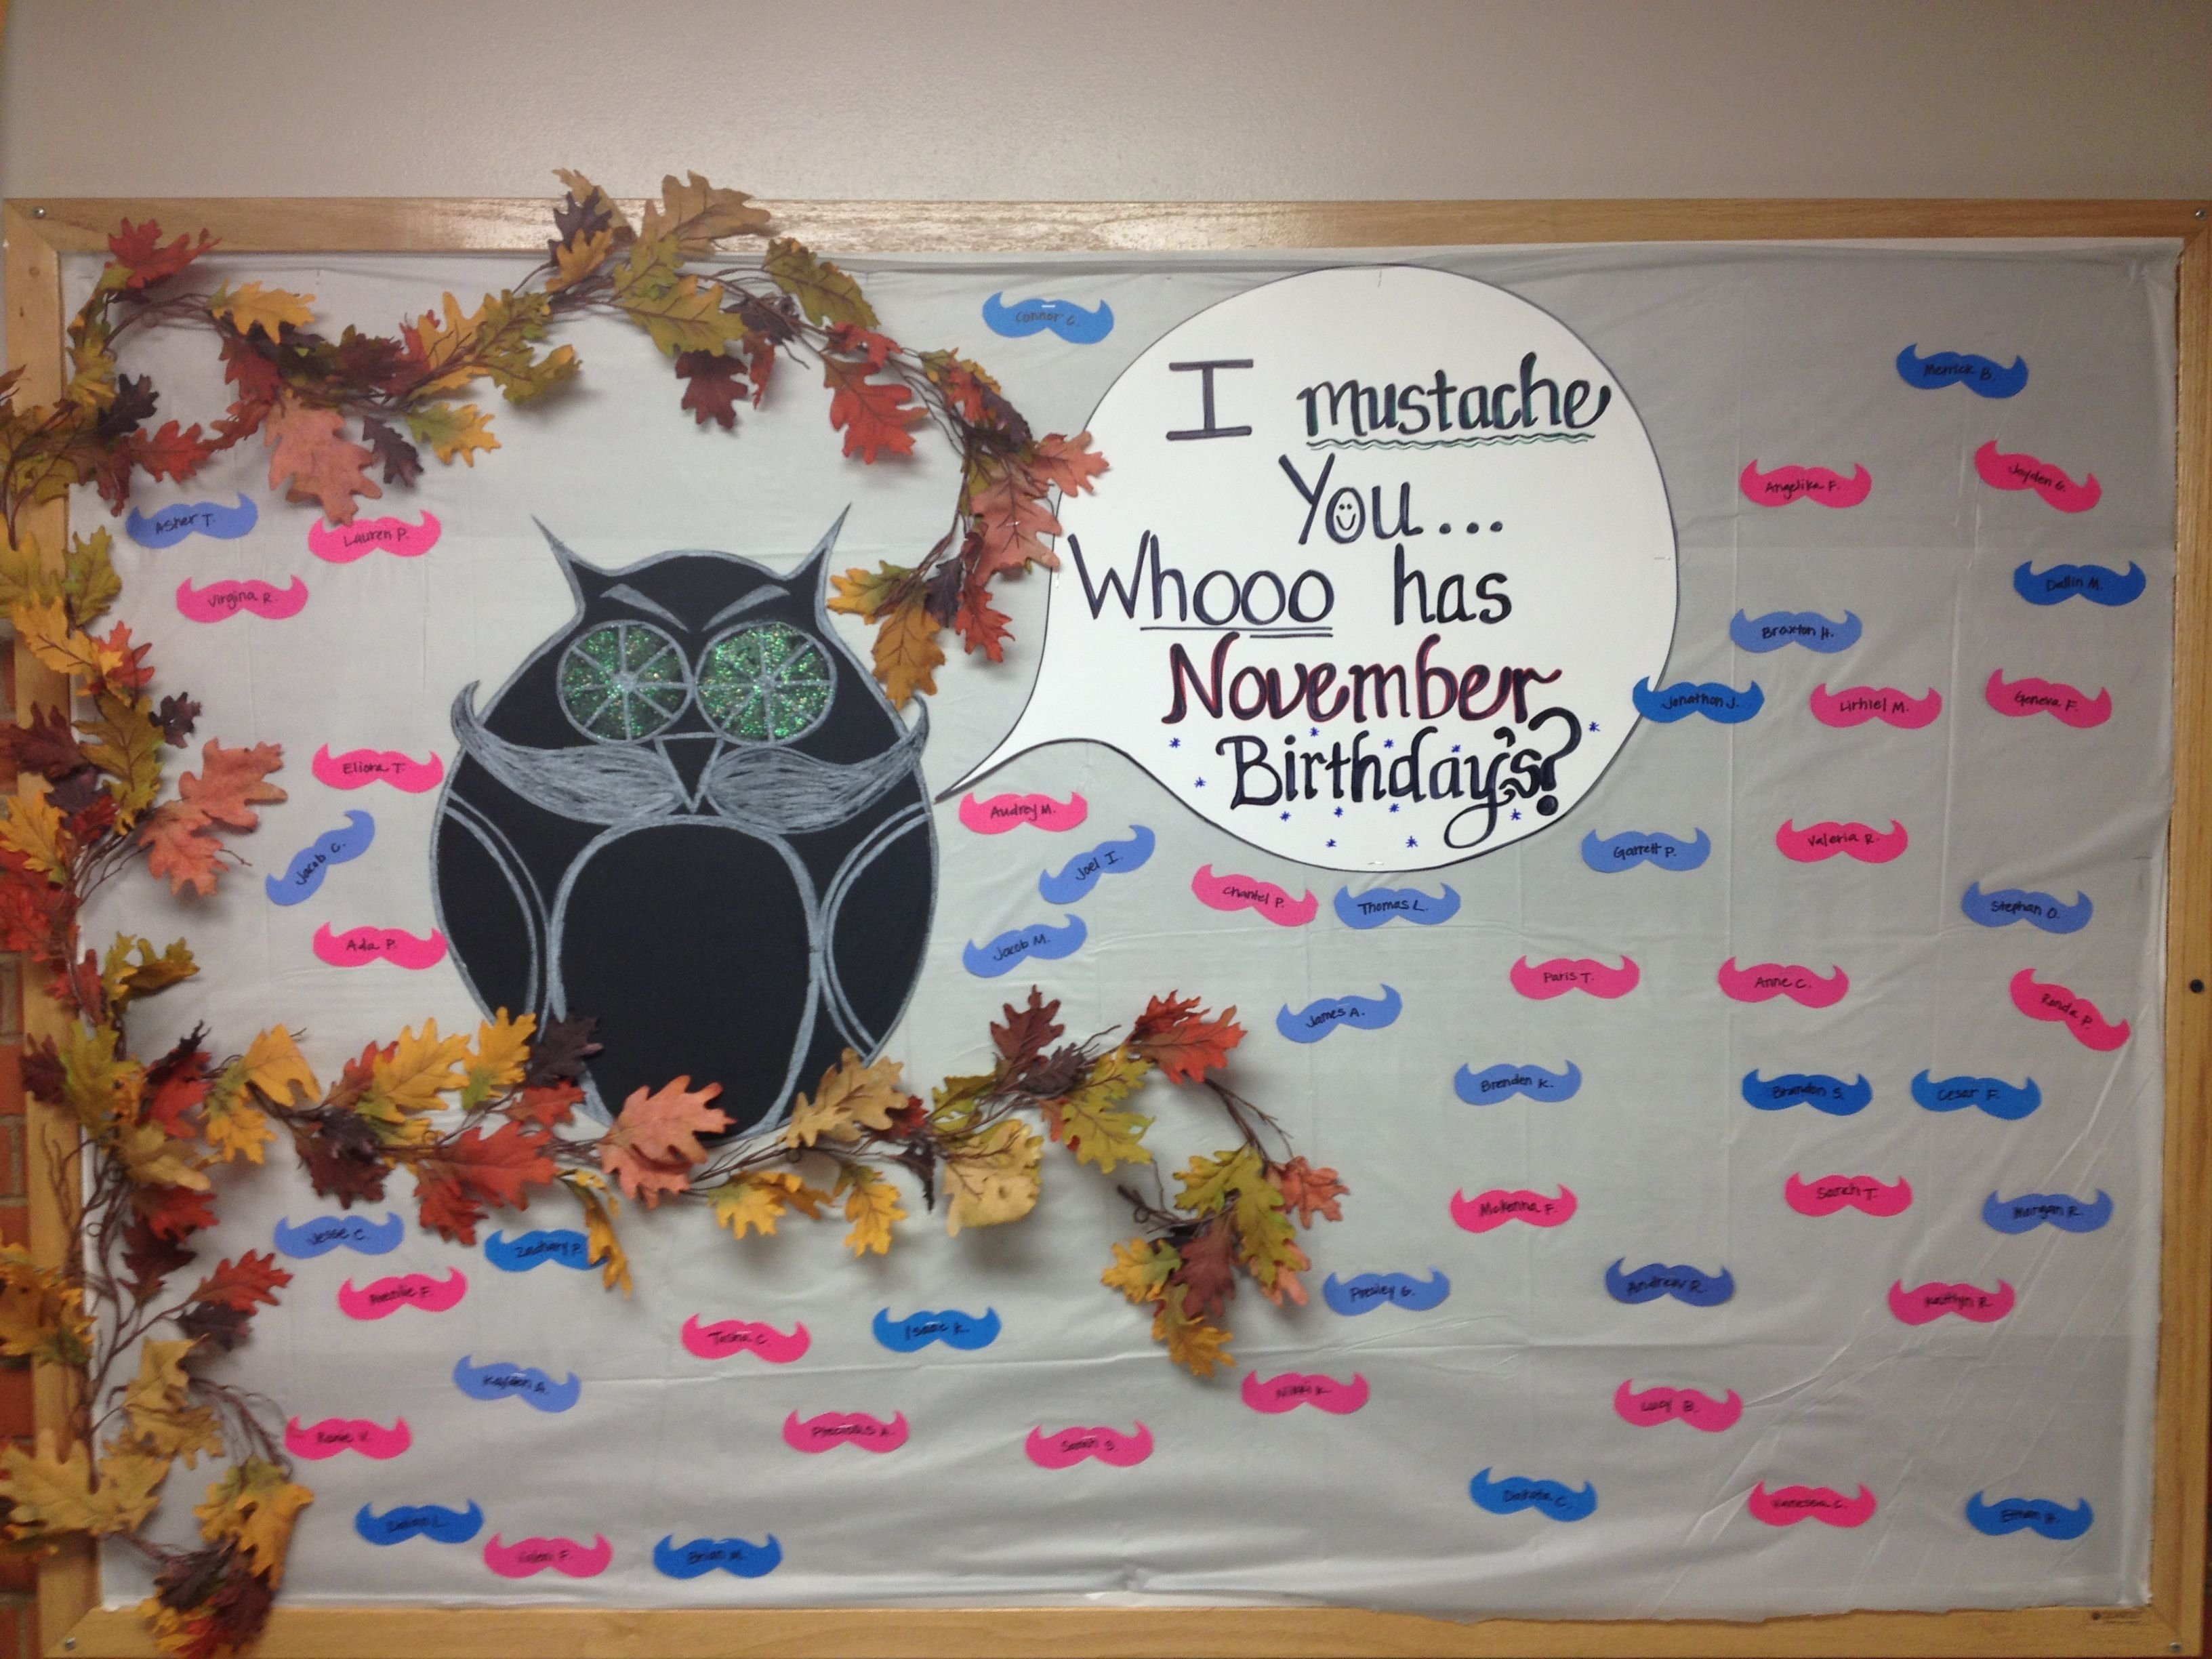 10 Famous Bulletin Board Ideas For November november birthday bulletin board i volunteered for november and 1 2021